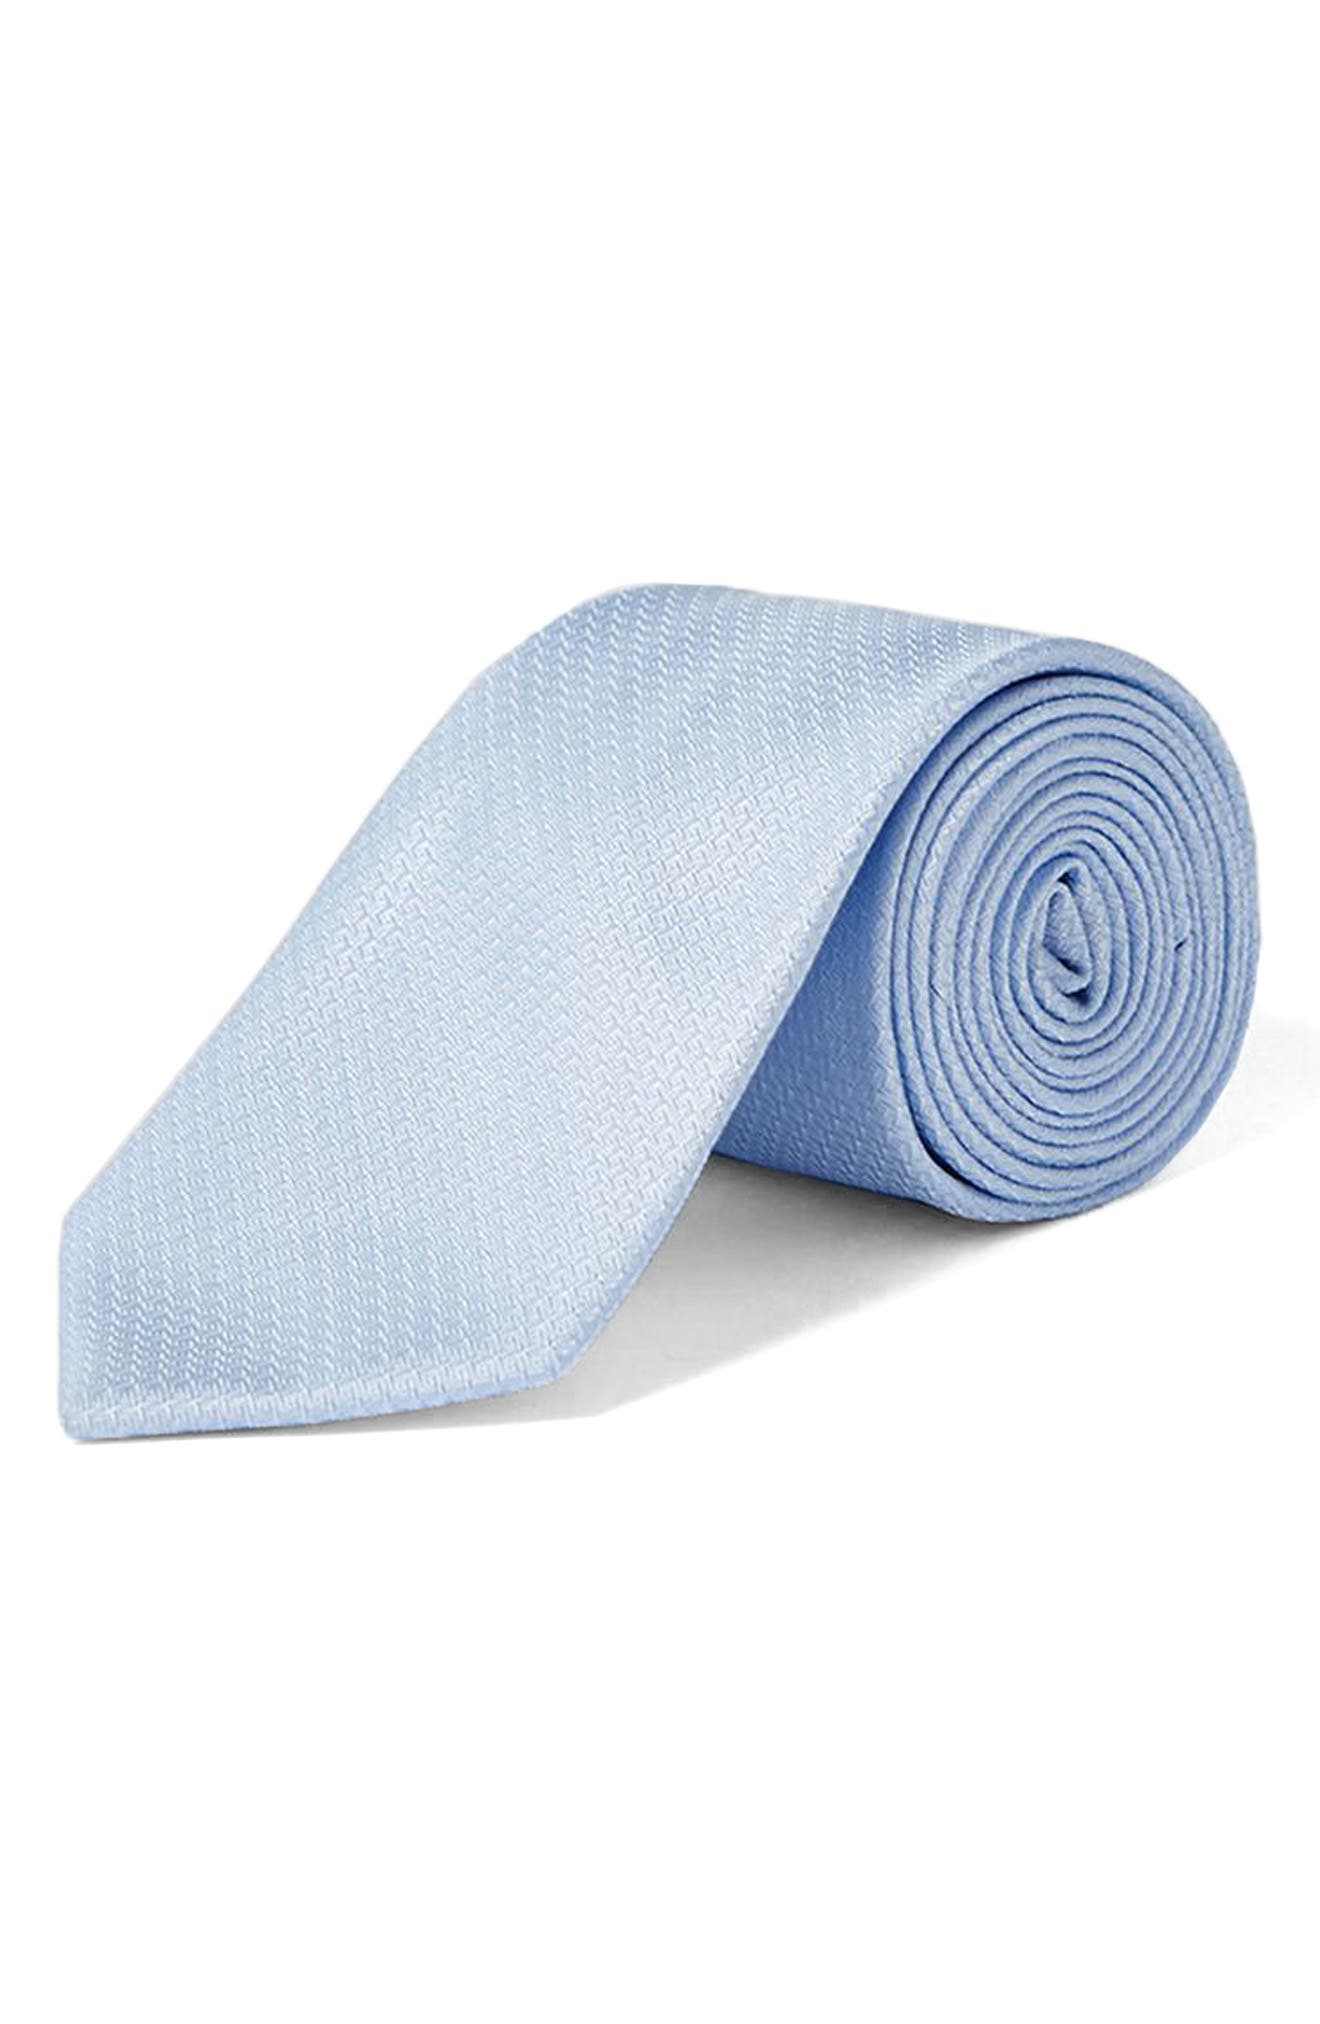 Textured Woven Tie,                             Main thumbnail 1, color,                             Light Blue